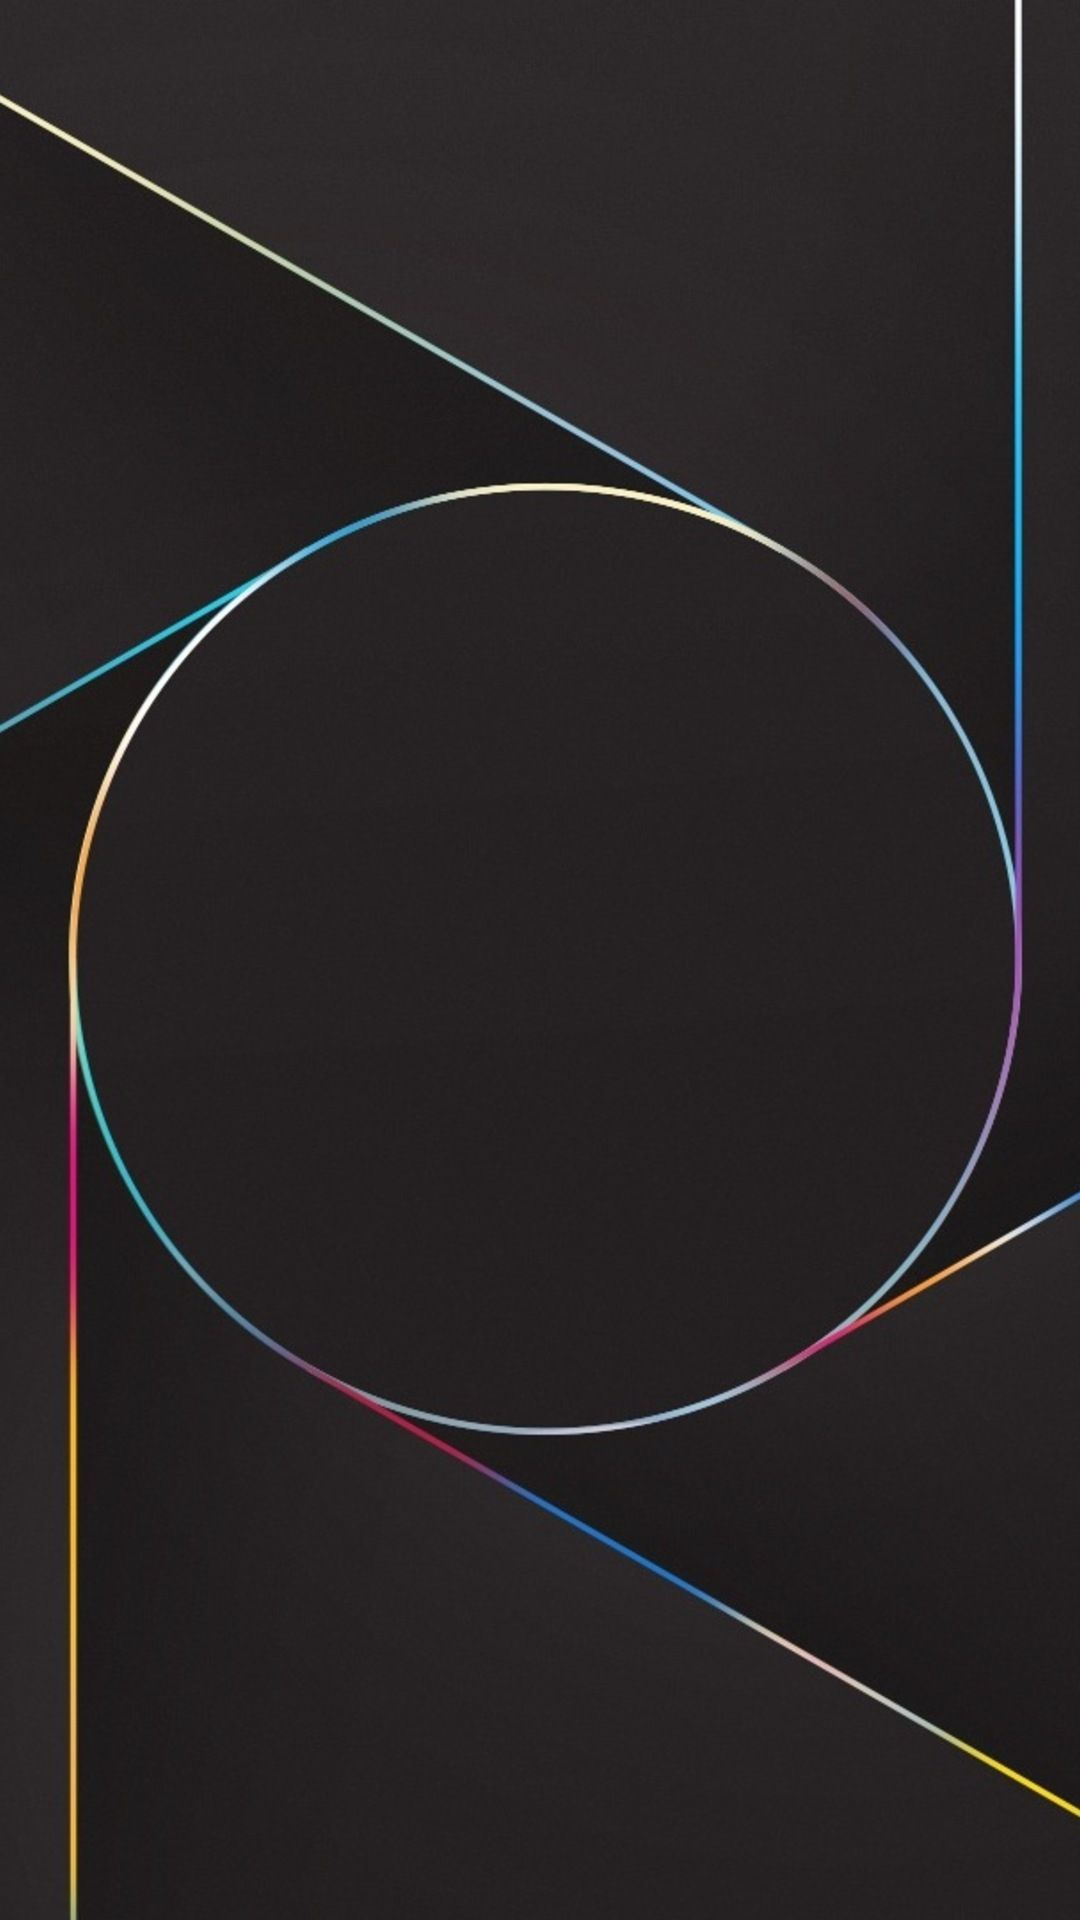 Abstract Lines Circle In 1080x1920 Resolution Abstract Lines Photoshop Wallpapers Bubbles Wallpaper